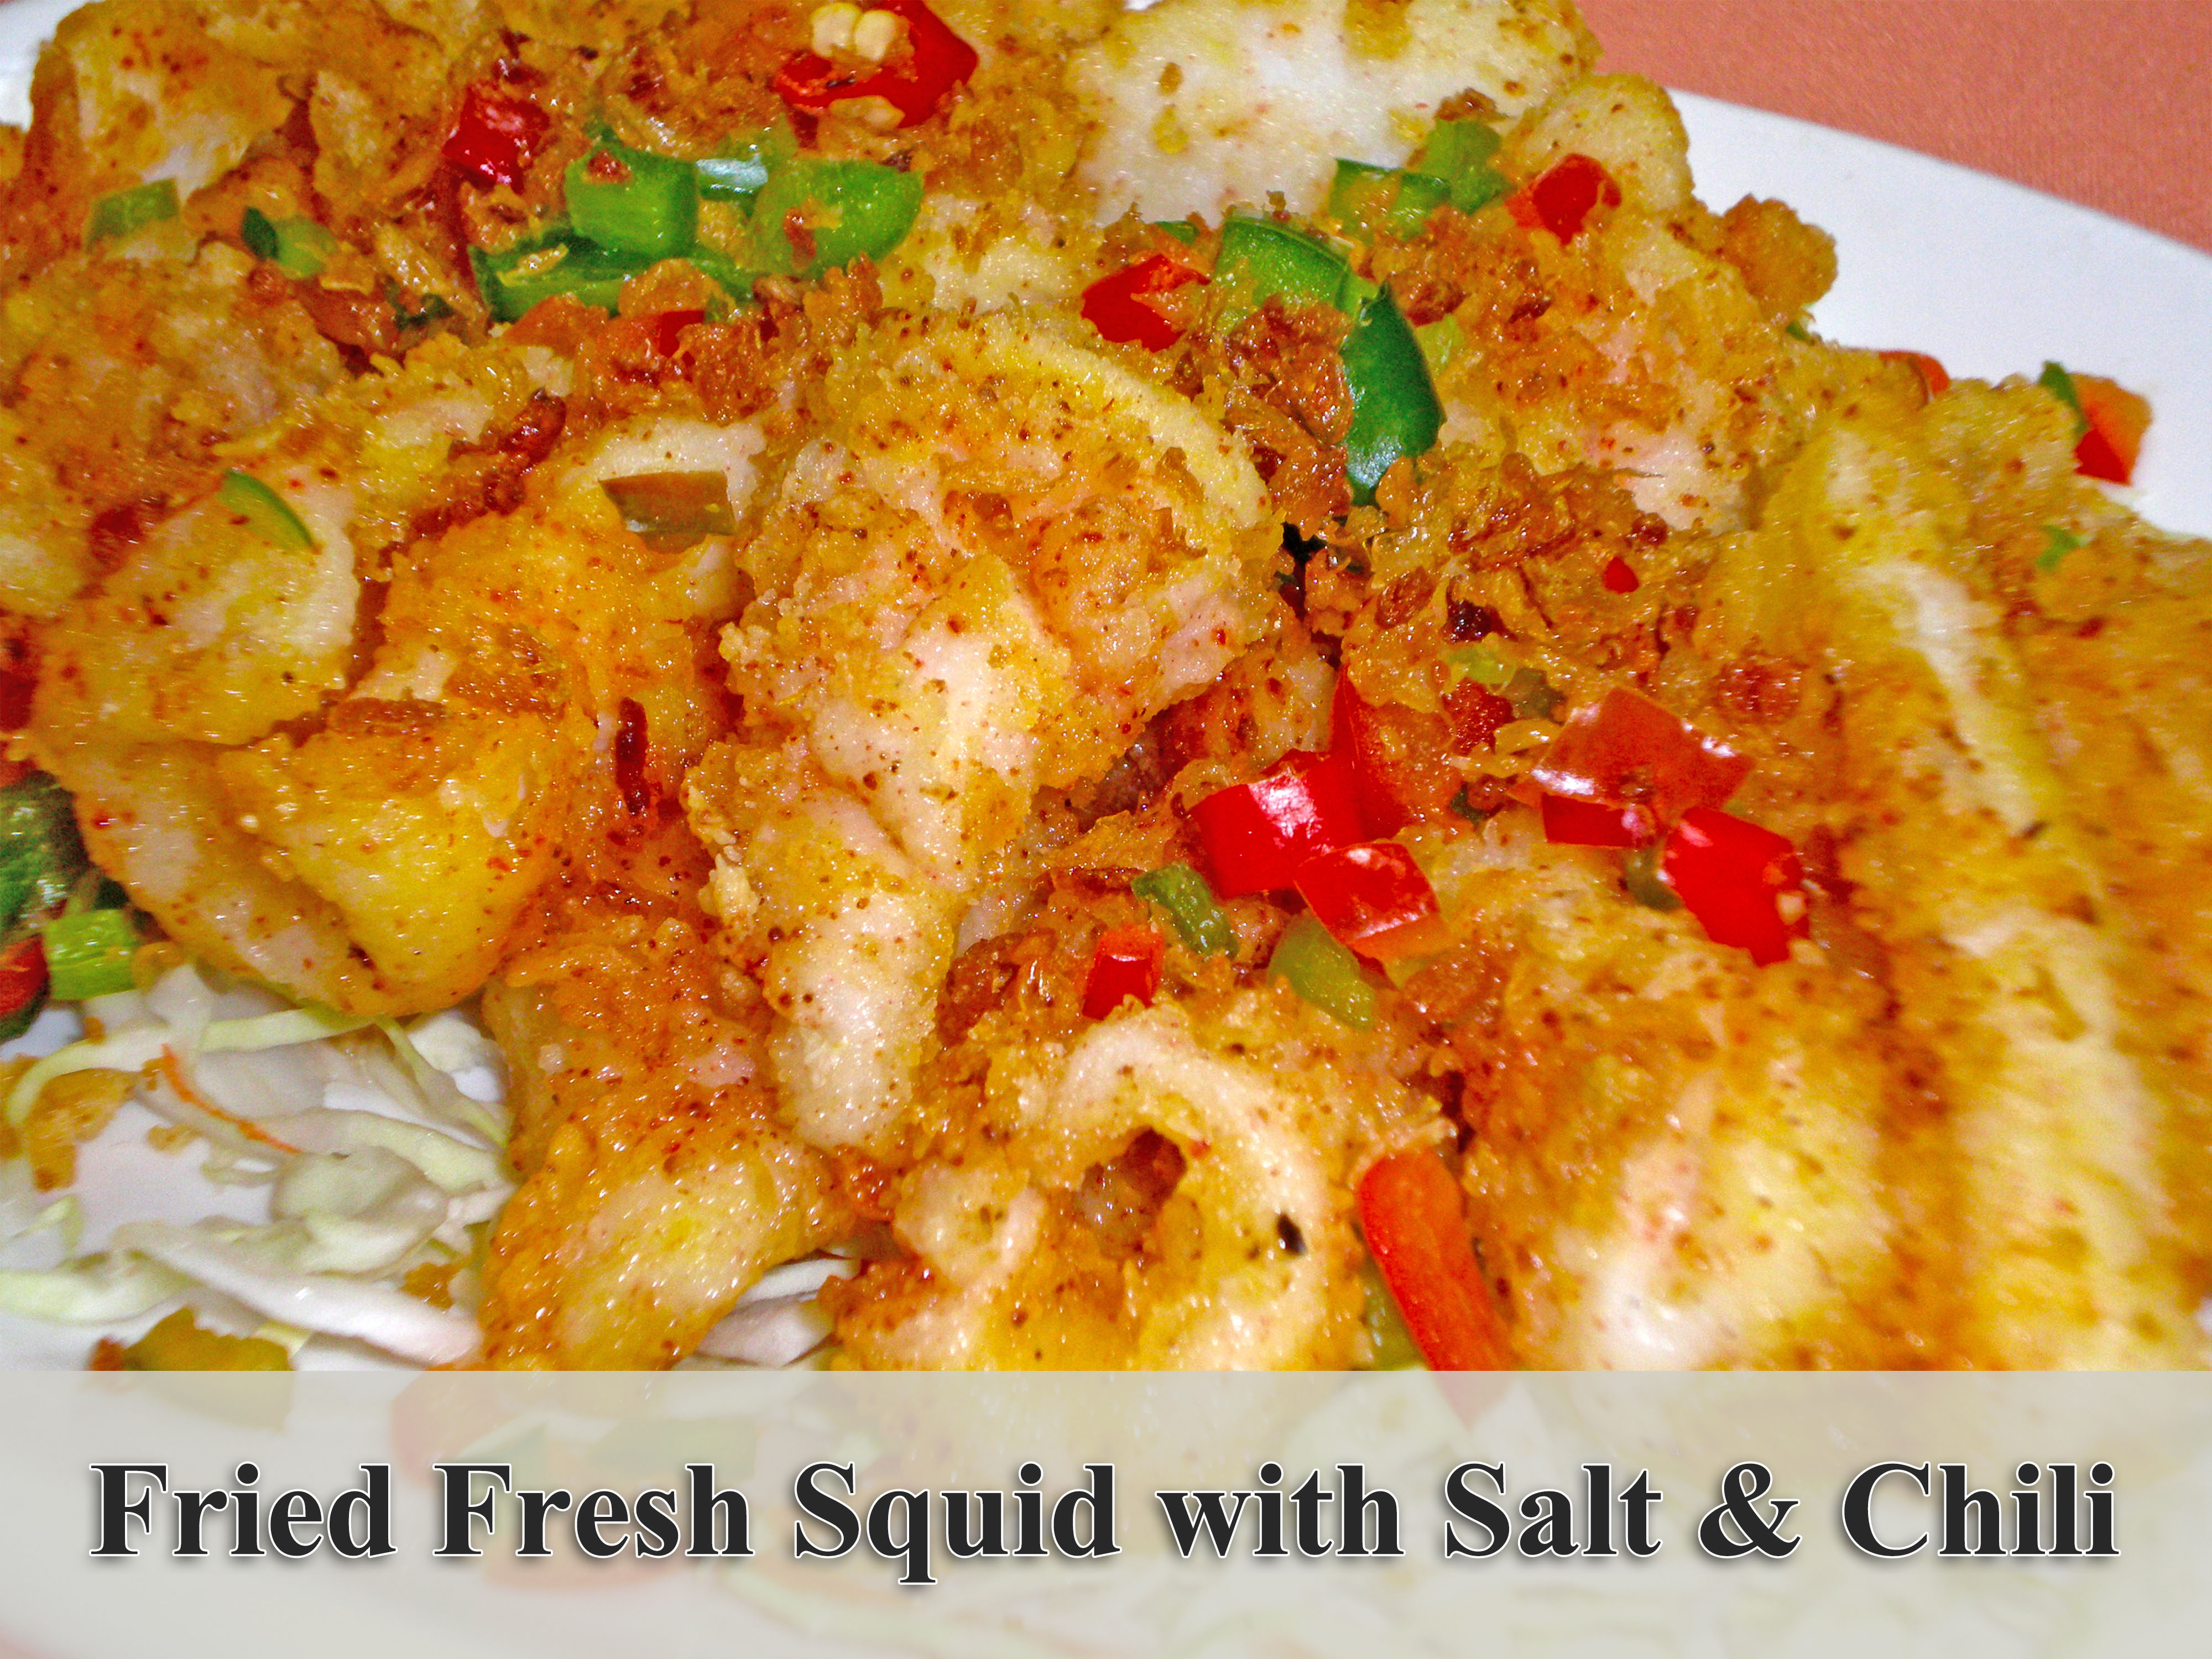 Fried Fresh Squid with Salt & Chili